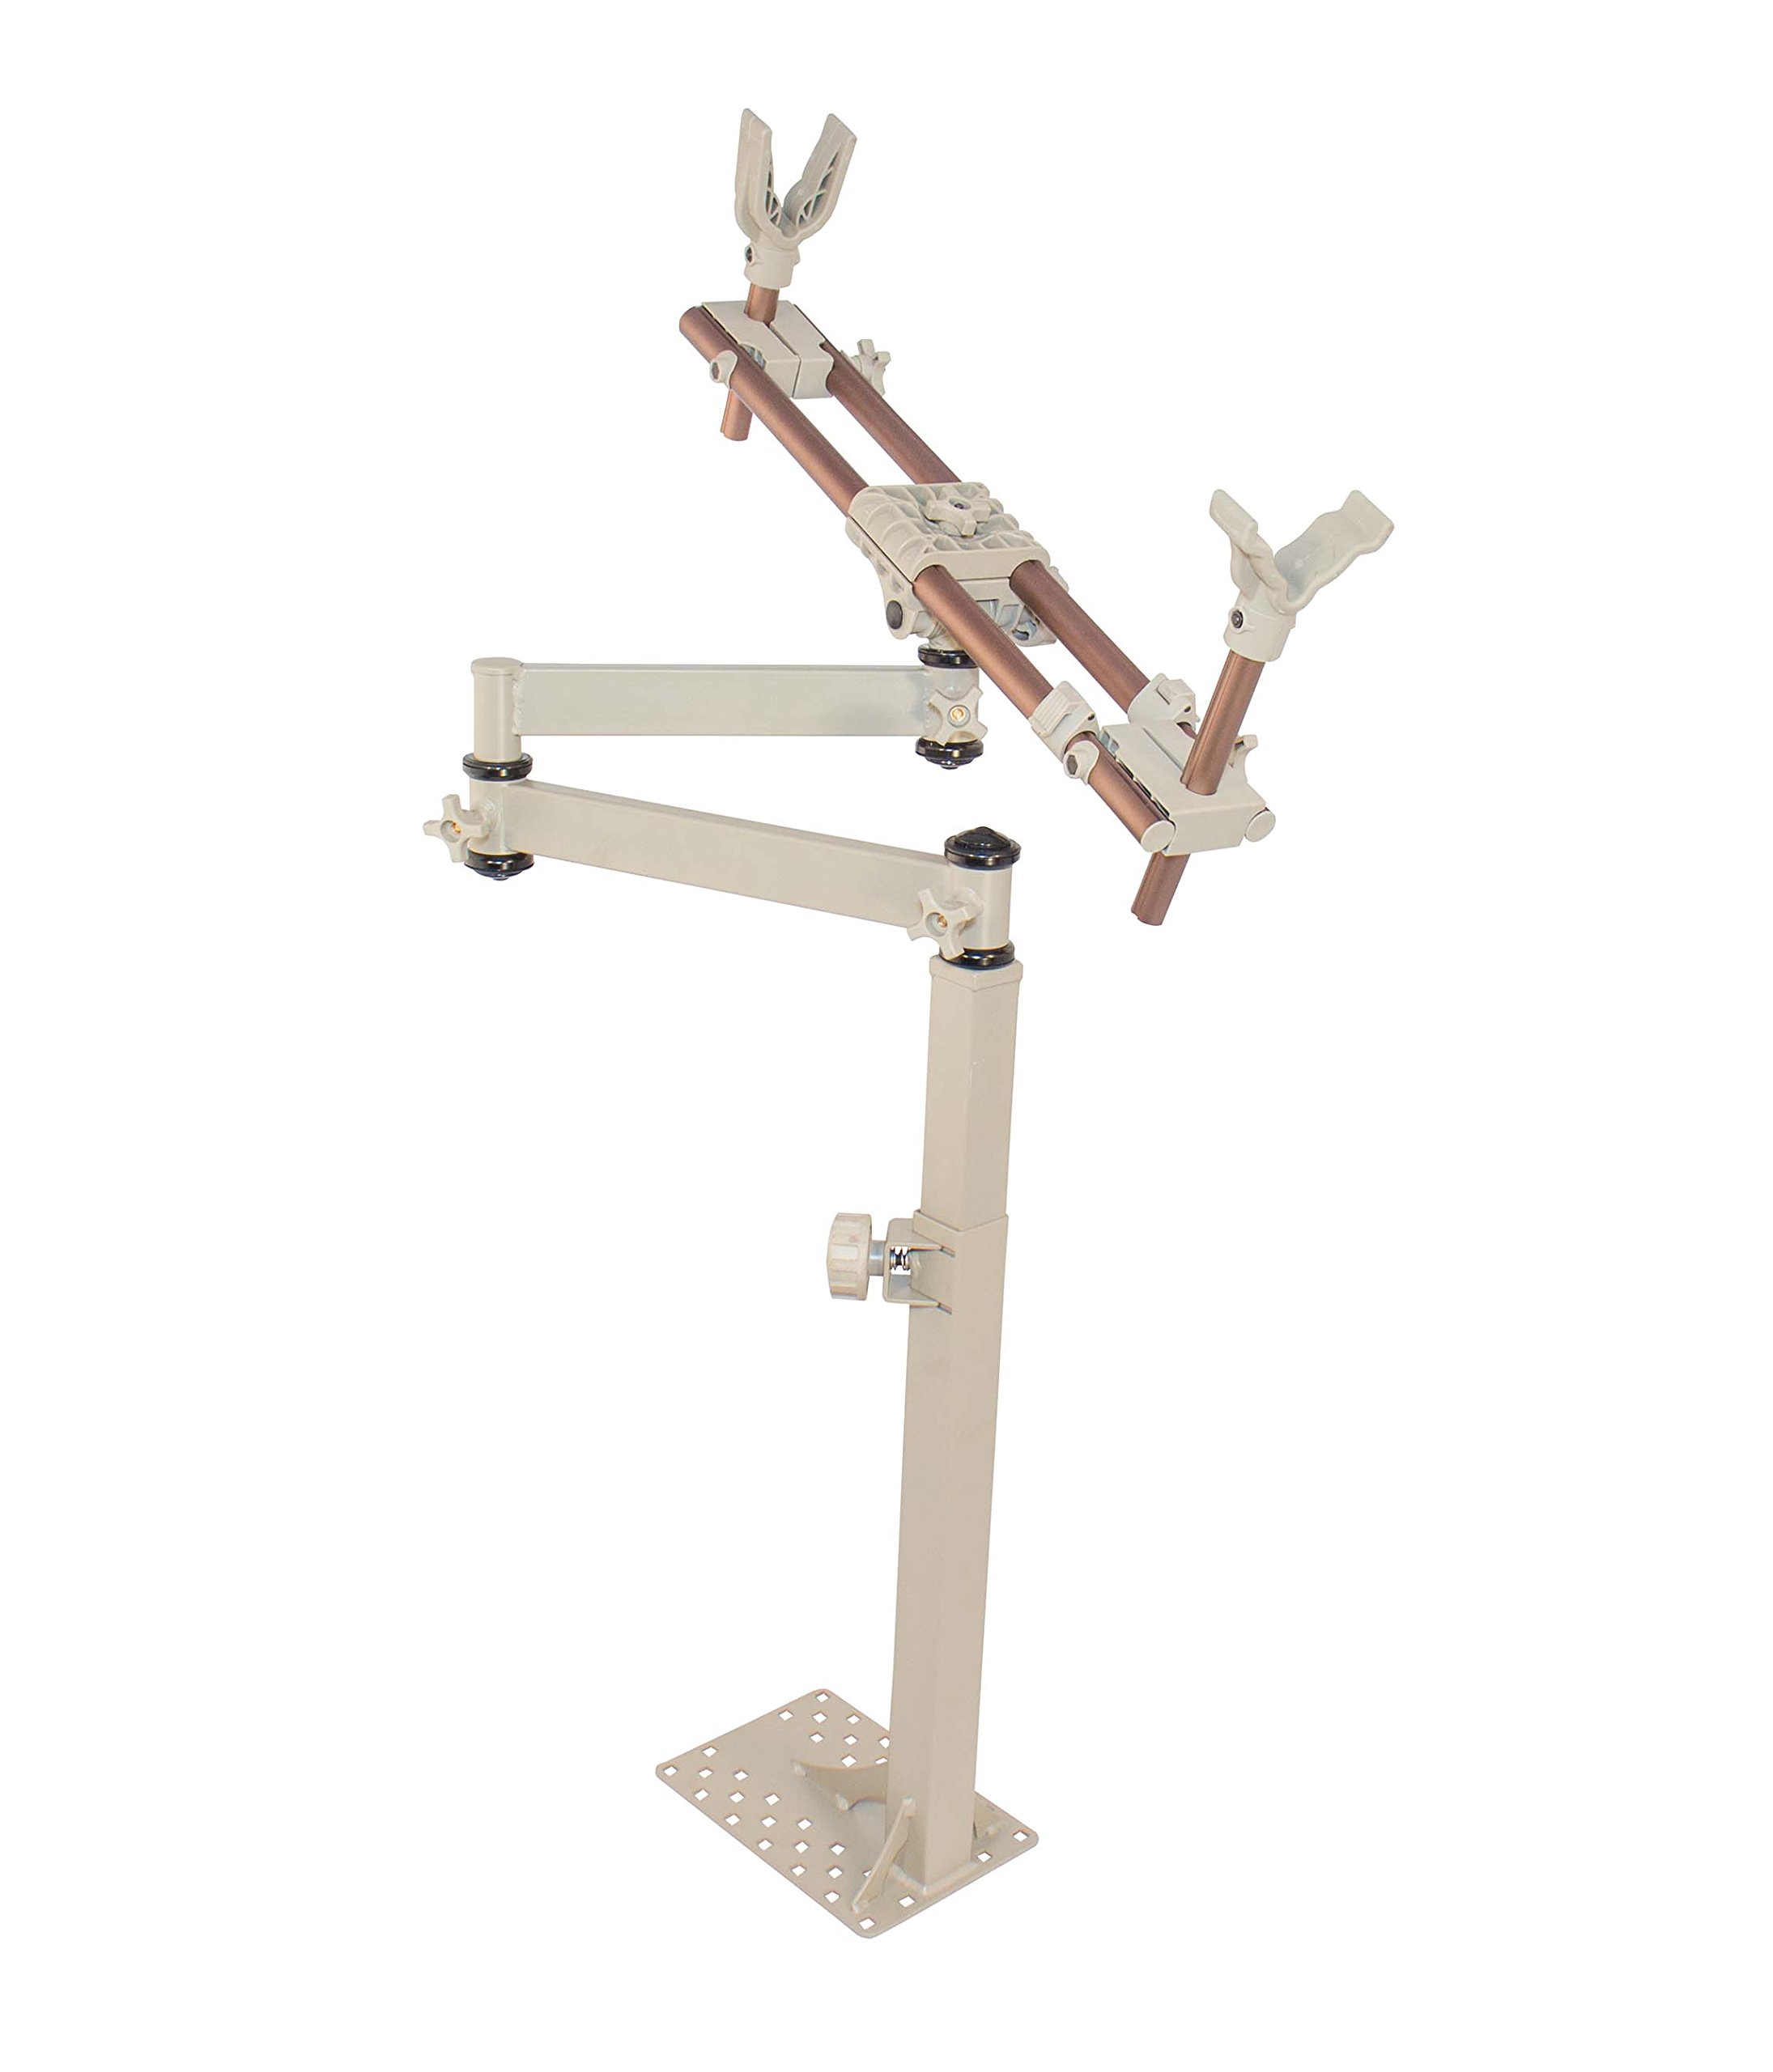 Caldwell DeadShot TreePod Adjustable Ambidextrous Rifle Shooting Rest for Outdoor Range and Hunting by Caldwell